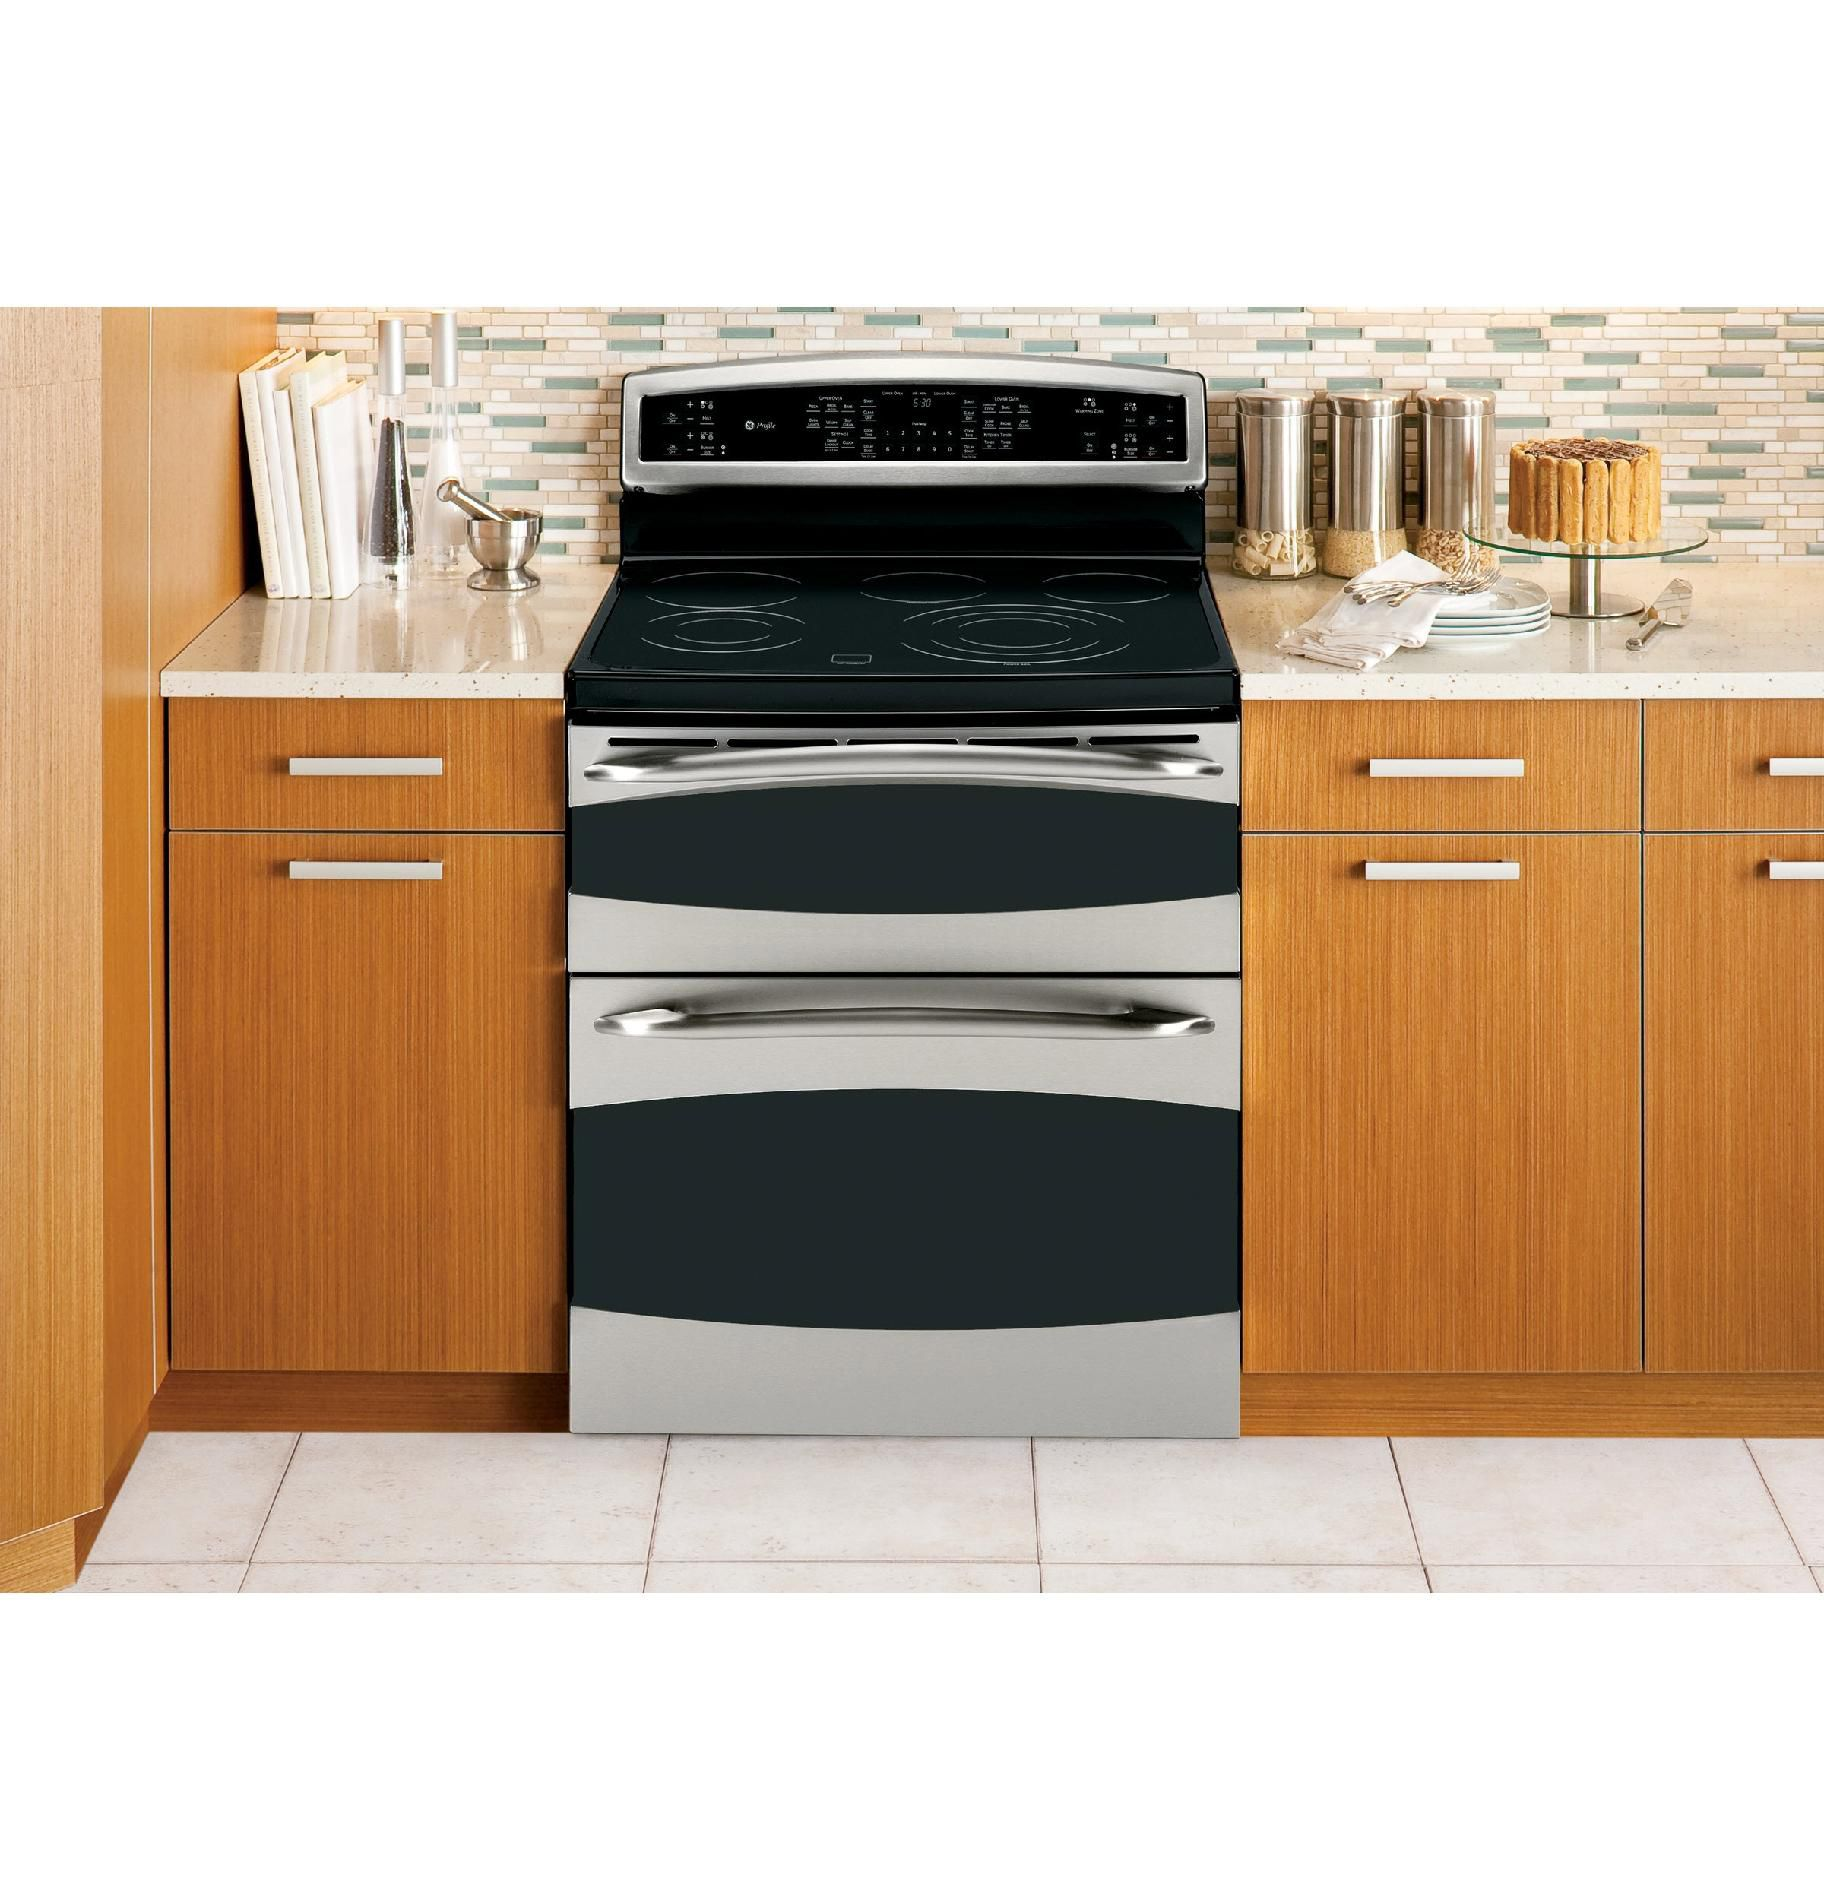 GE Profile Profile™ Series 6.6 cu. ft. Electric Range w/ Double Convection Oven - Stainless Steel